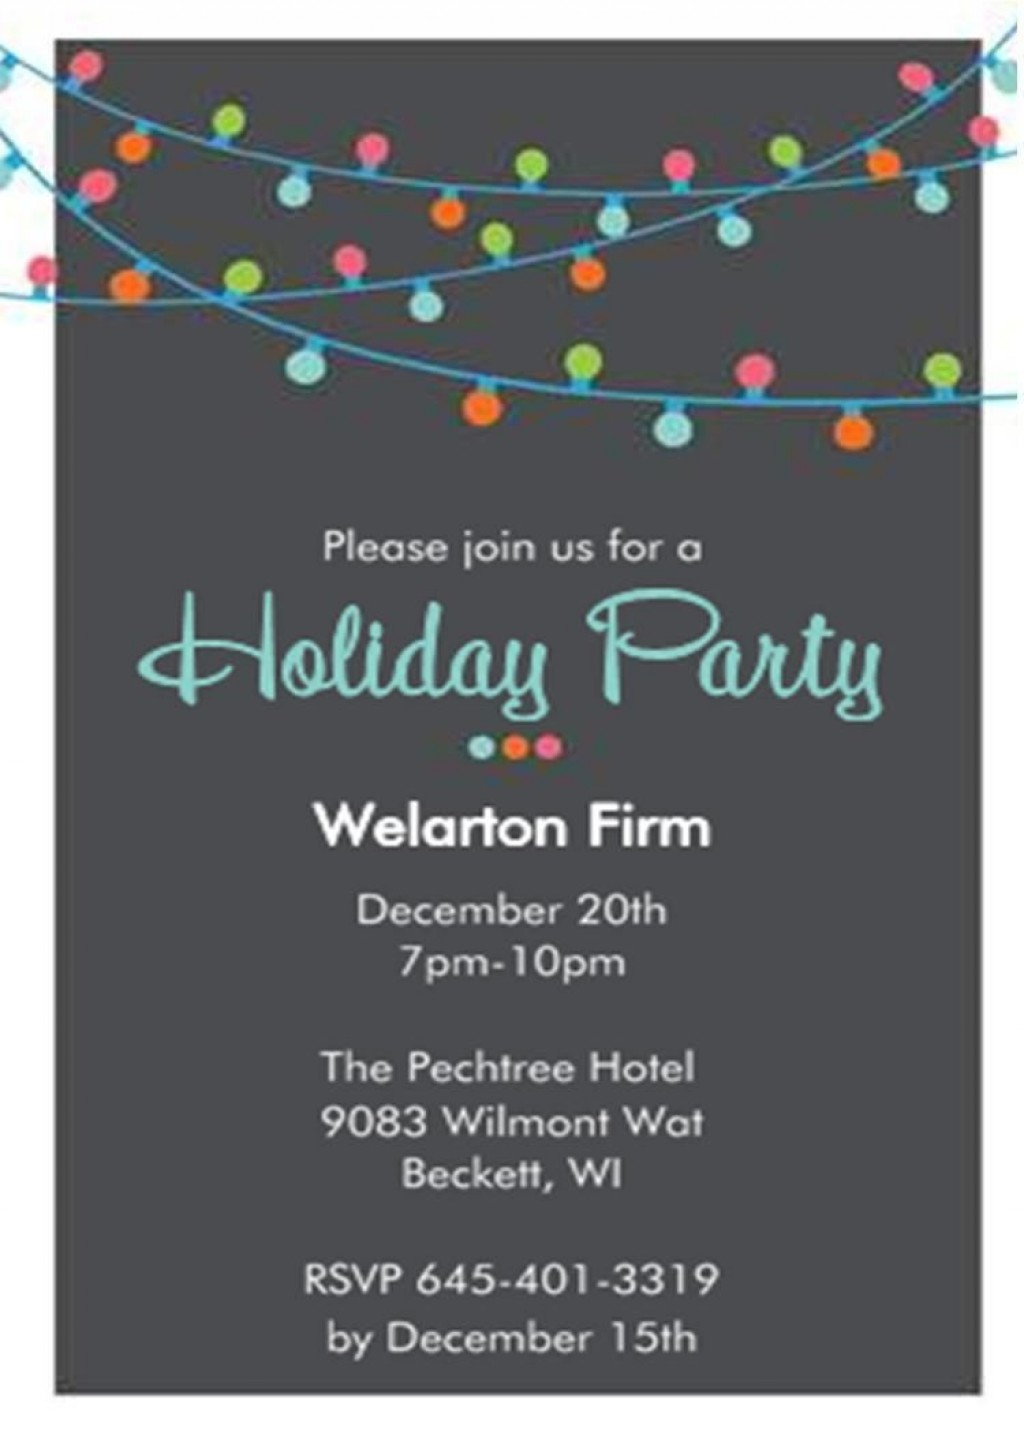 004 Striking Free Busines Holiday Party Invitation Template Concept  Templates Printable OfficeLarge